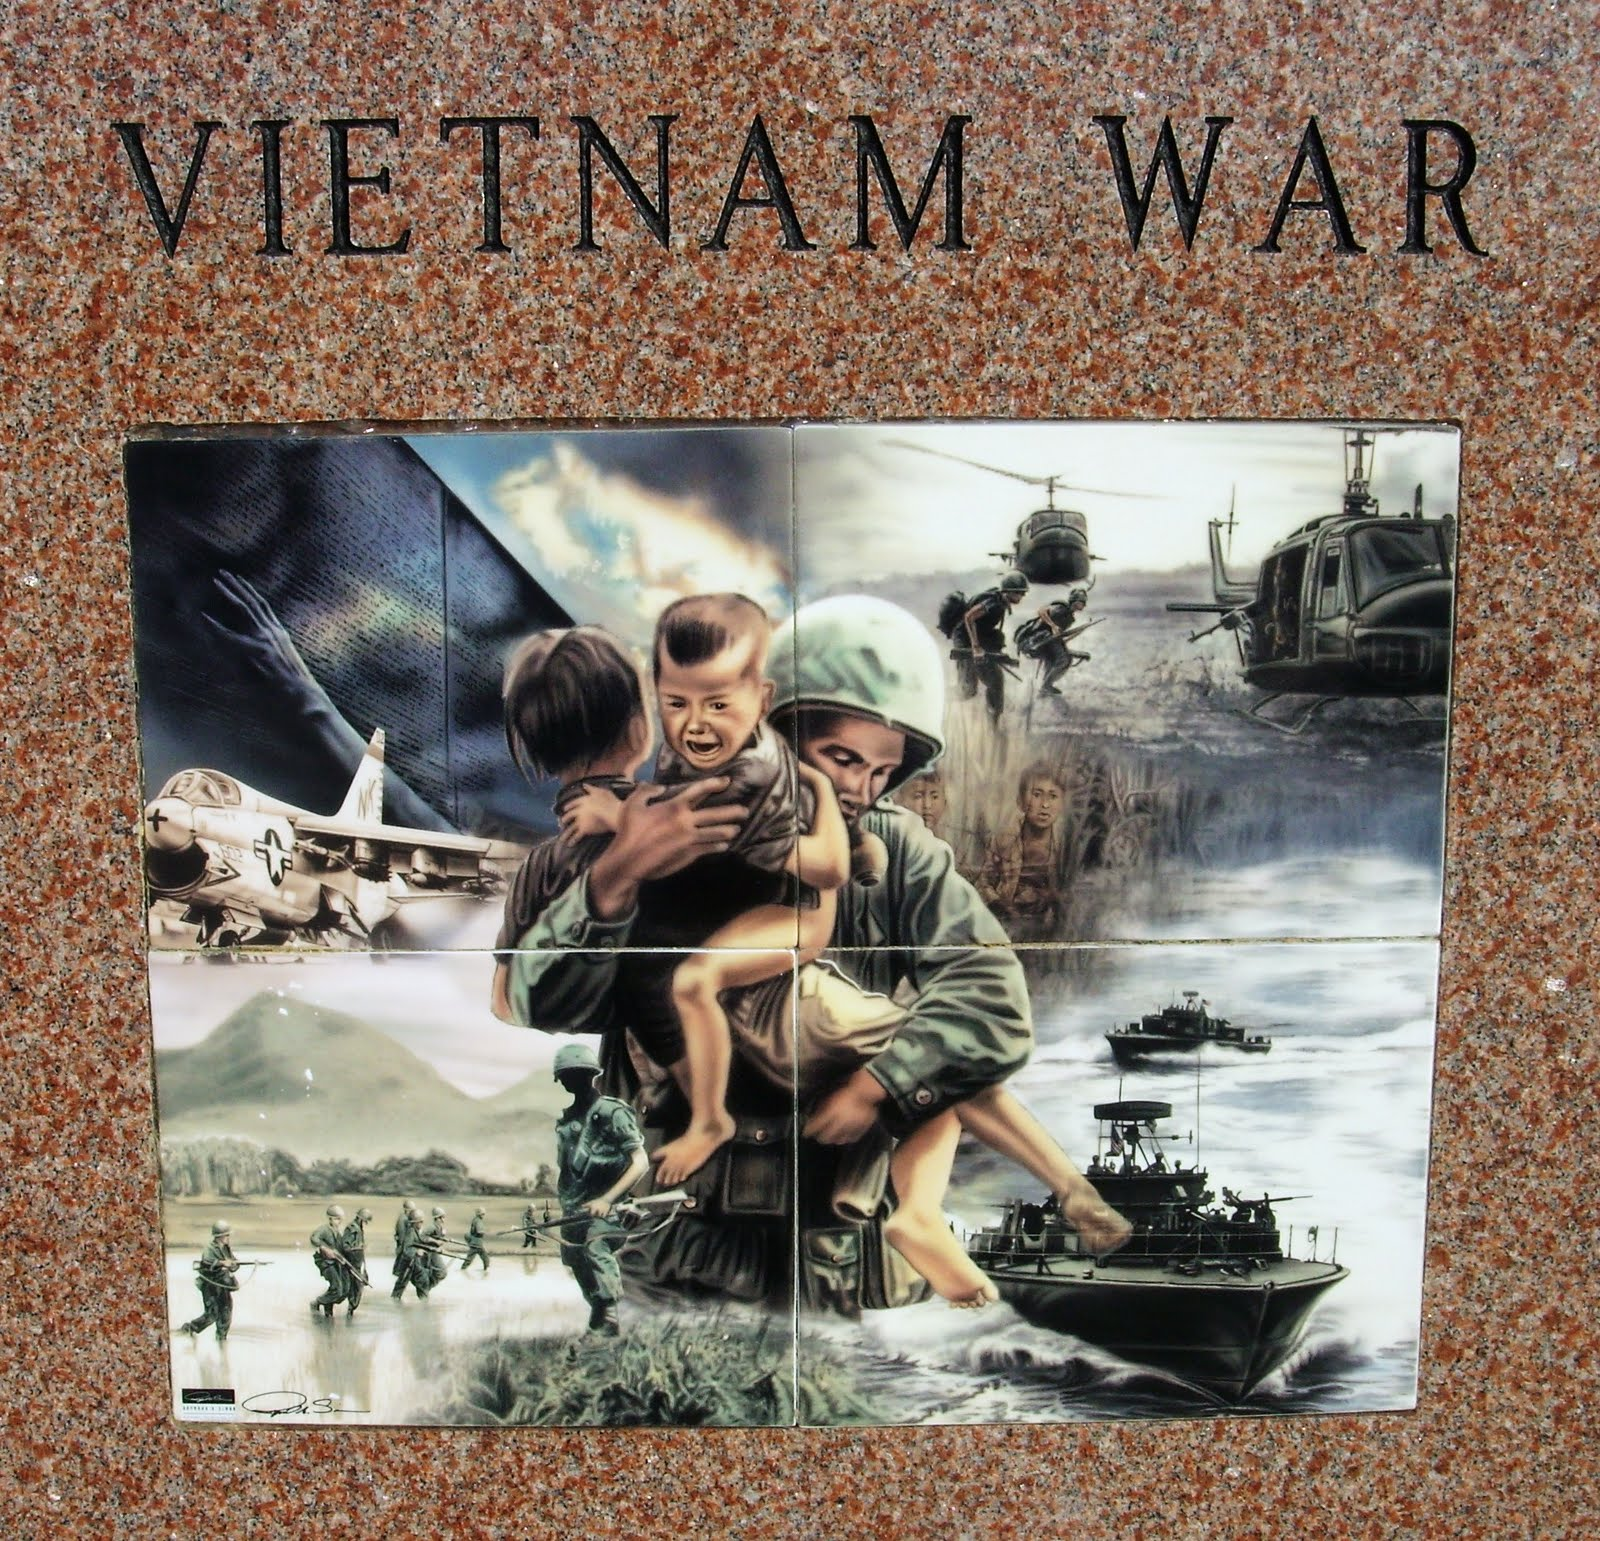 a history of vietnam war Study of the background, causes, conduct, and consequences of the vietnam  war, 1945-1975 prereq: english 1110xx and any history.